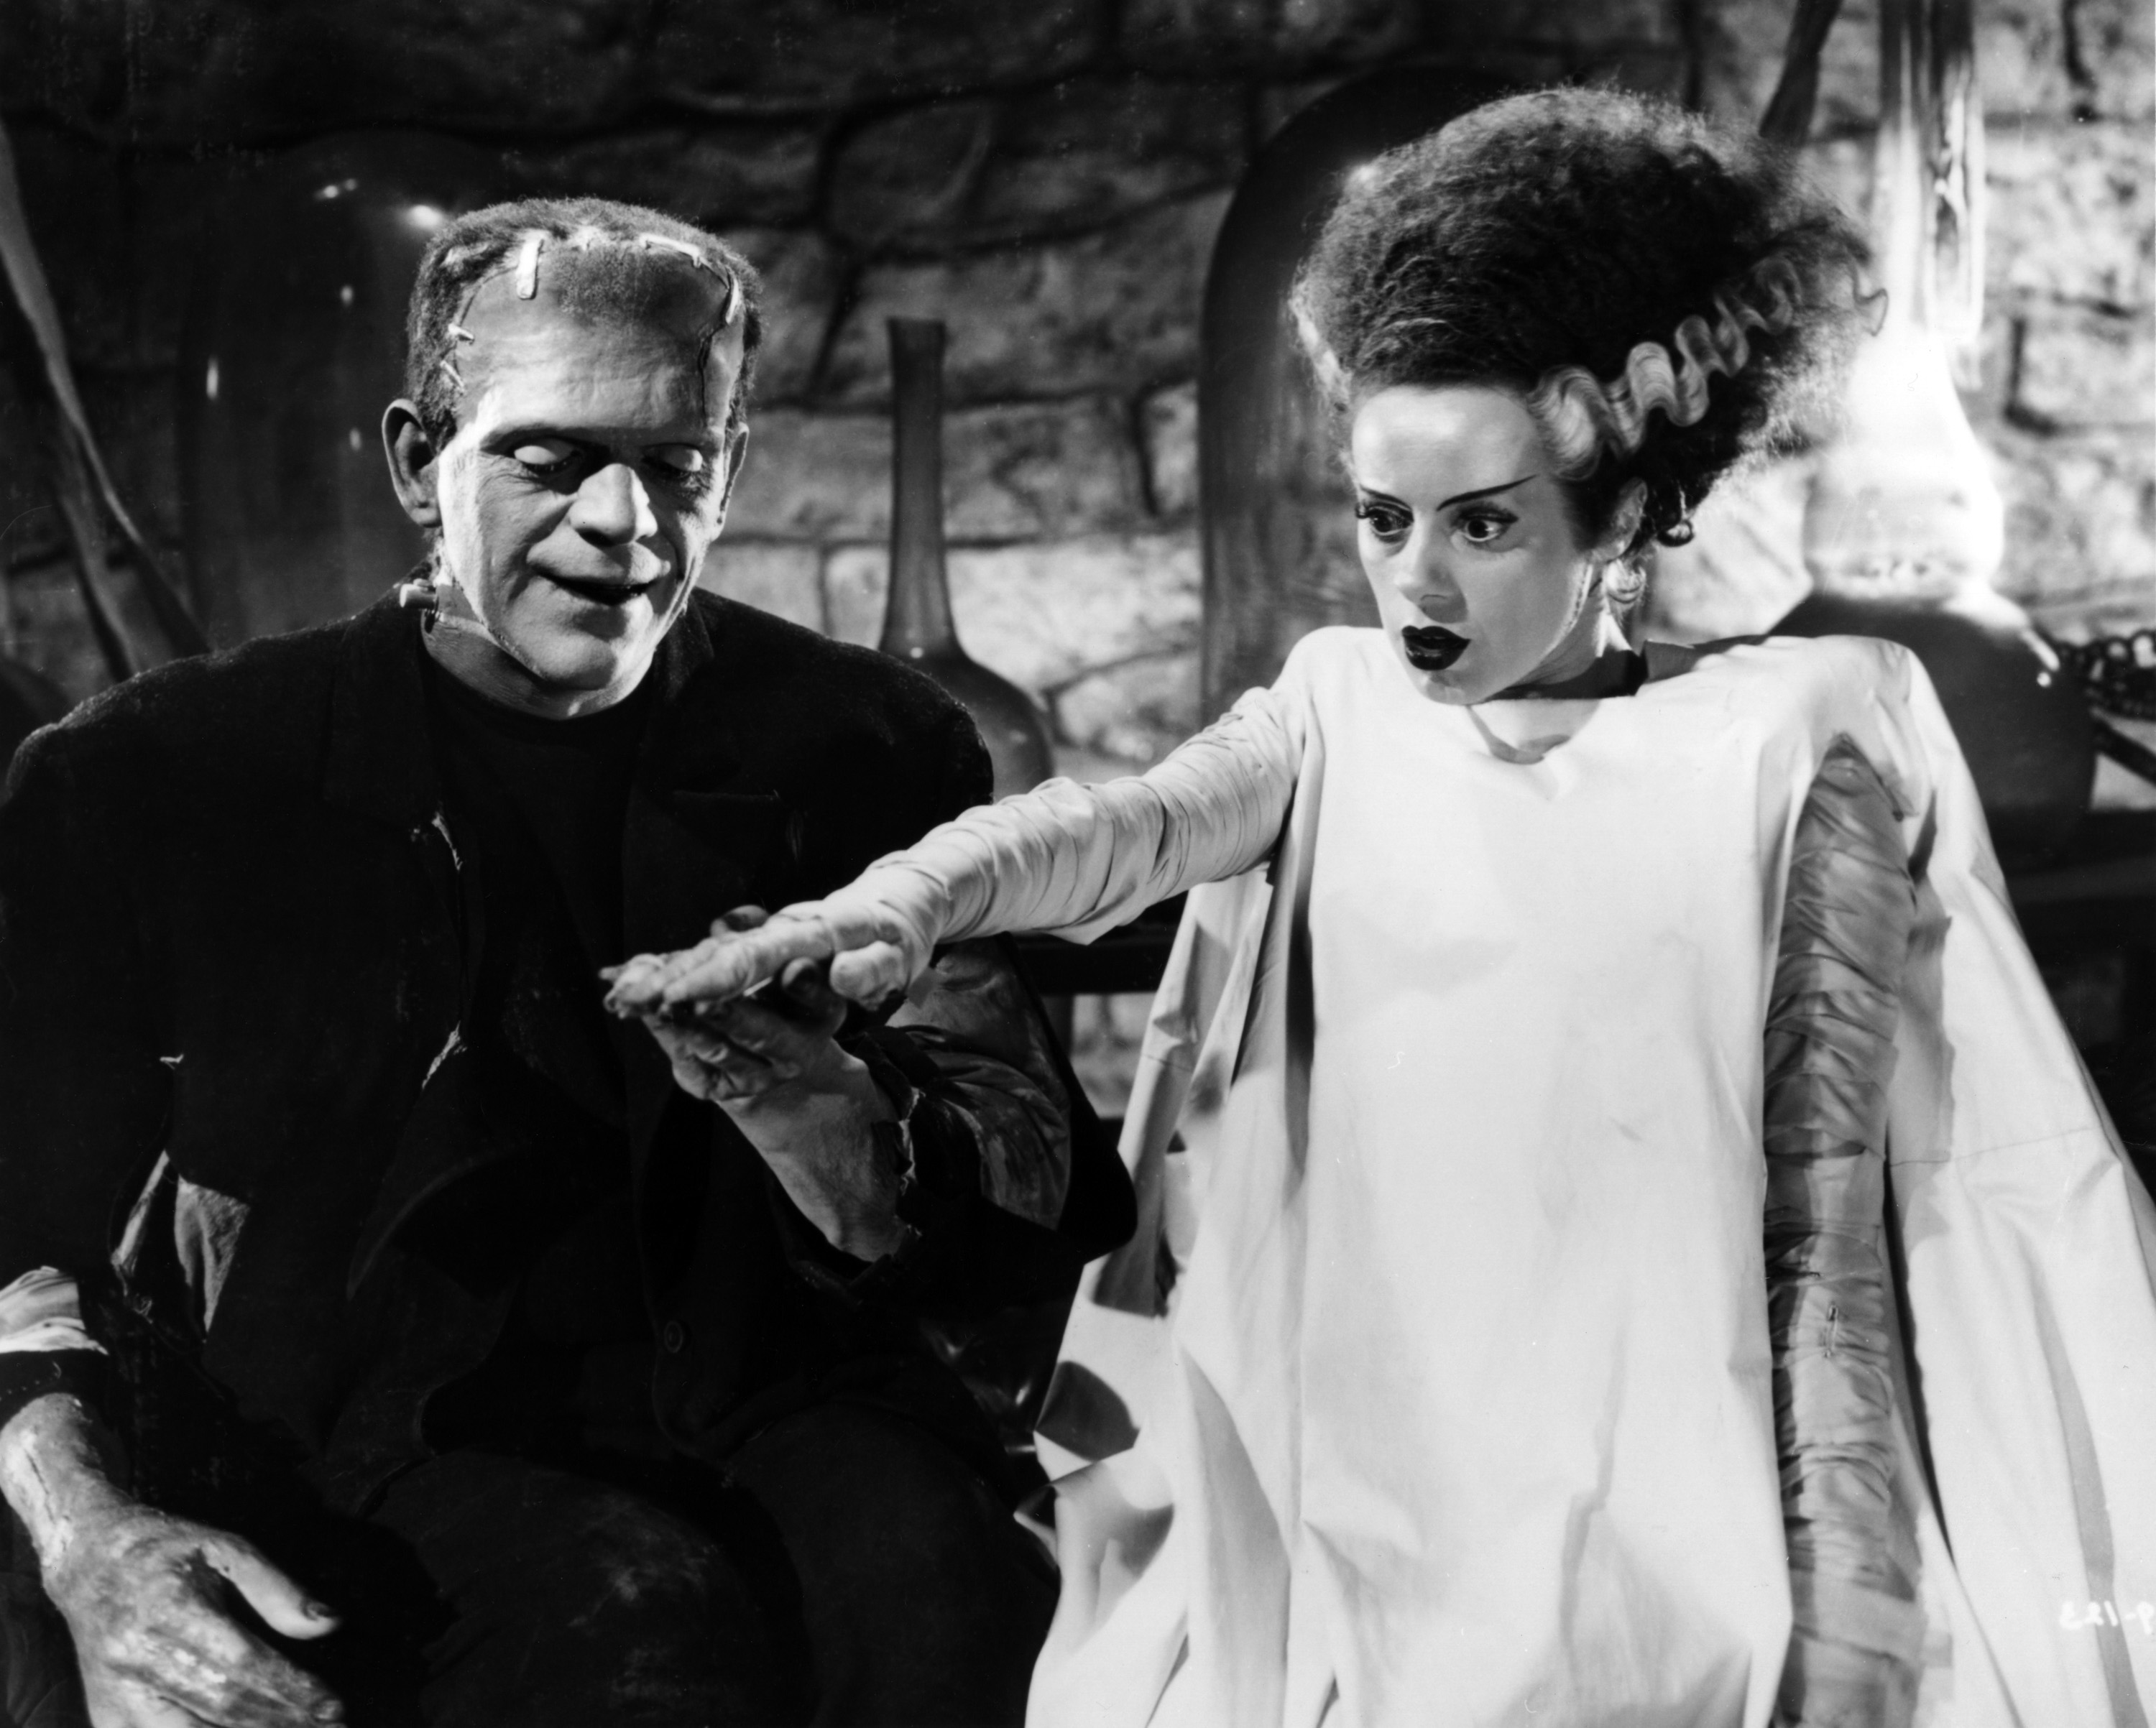 """The Academy of Motion Picture Arts and Sciences will host a month-long series of screenings of classic horror films with """"Universal's Legacy of Horror"""" in October. The series is part of the studio's year-long 100th anniversary celebration engaging Universal's fans and all movie lovers in the art of moviemaking. Pictured: Boris Karloff and Elsa Lanchester in BRIDE OF FRANKENSTEIN, 1935."""